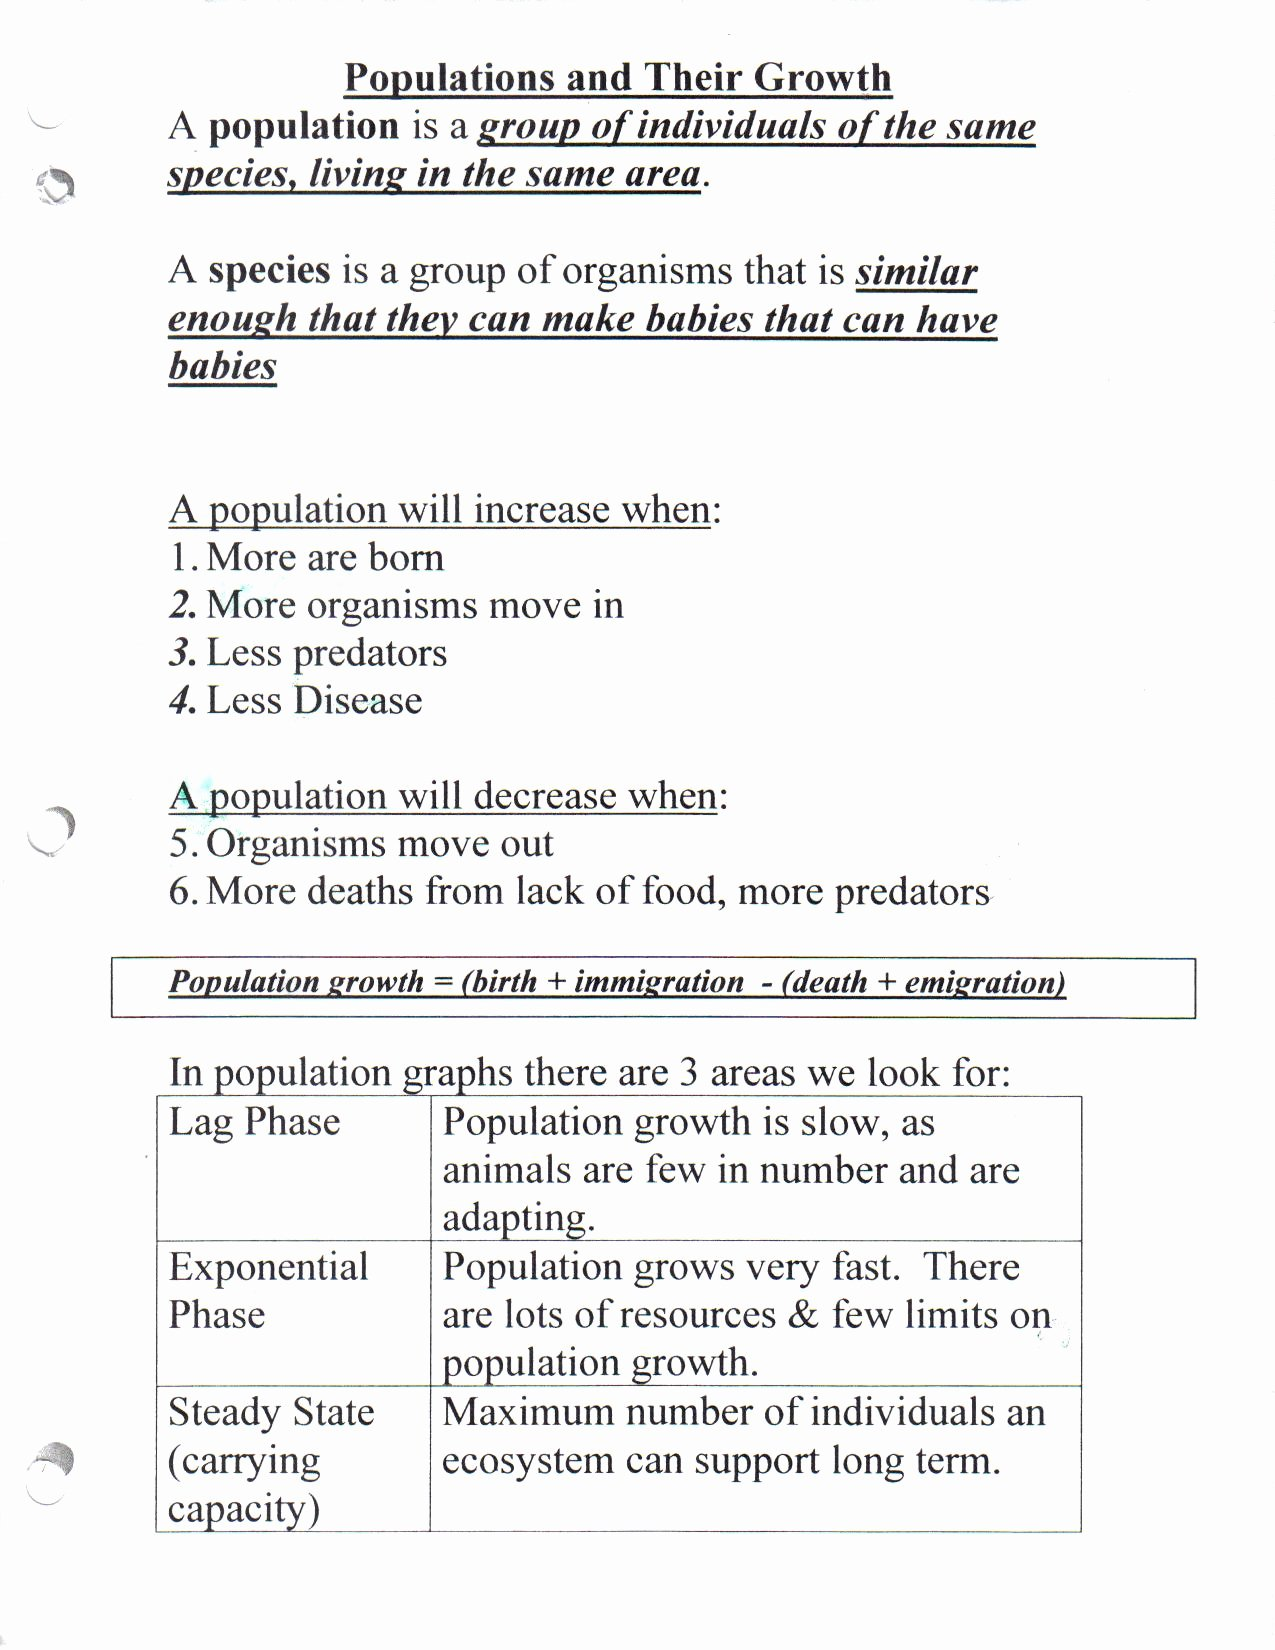 Bill Nye Biodiversity Worksheet Answers Unique Worksheet Bill Nye Biodiversity Worksheet Grass Fedjp